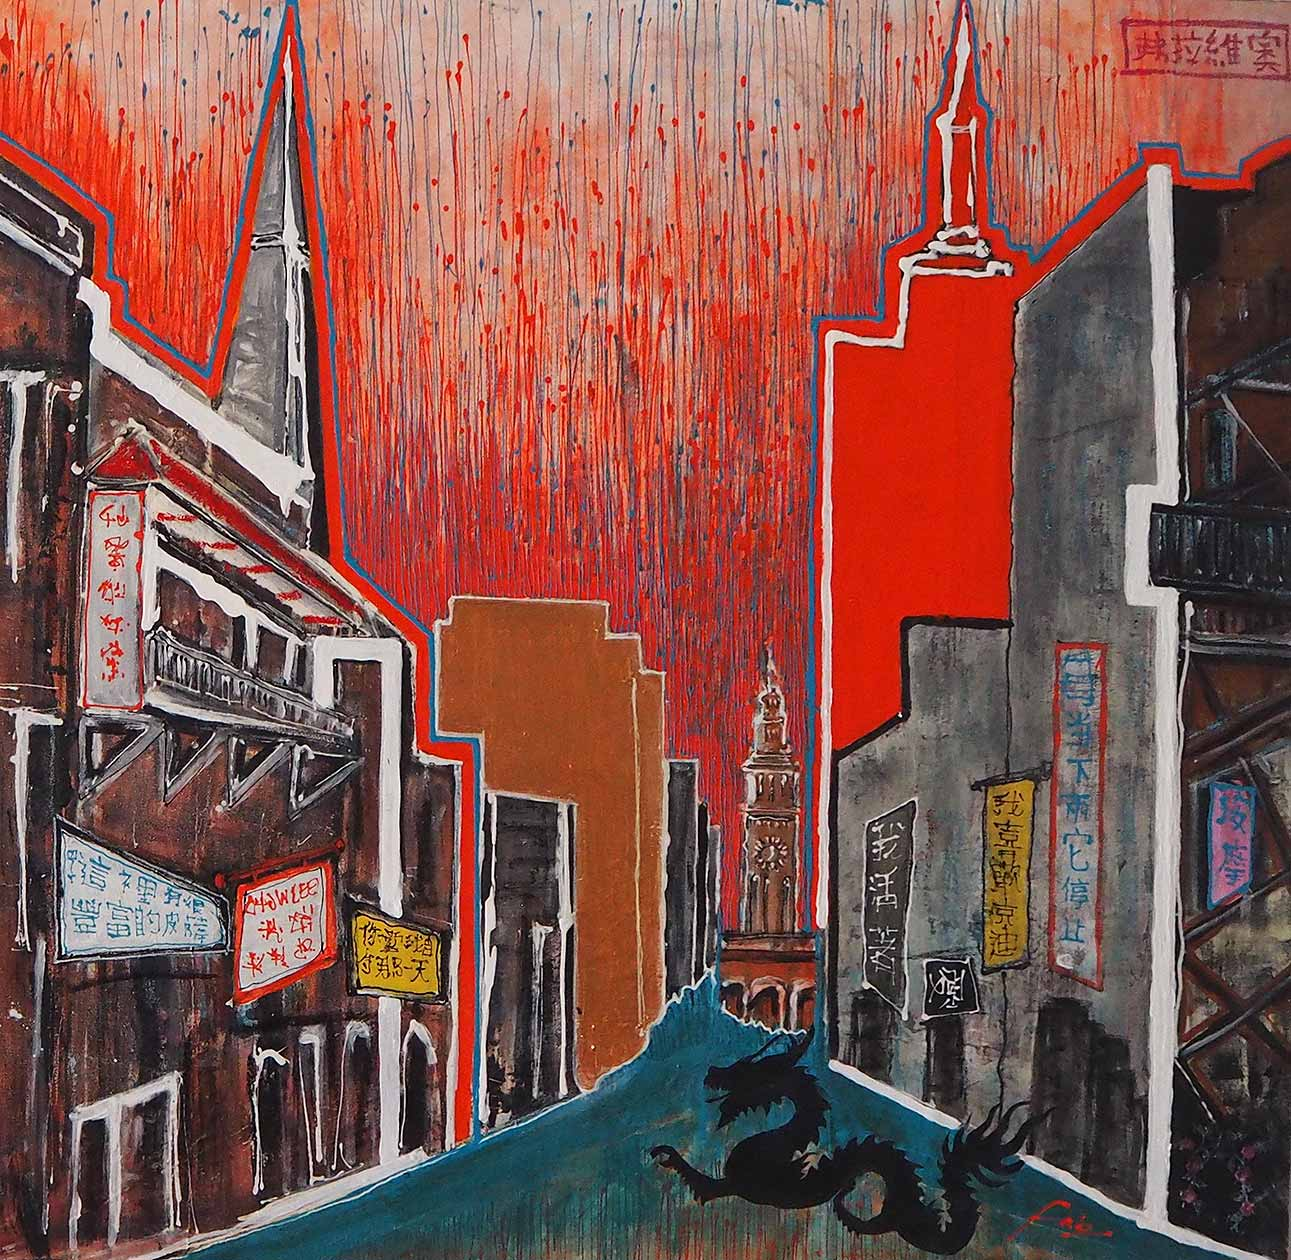 "<b>""Chinatown""</b> <span style= ""font-size:14px"">(2019)</span> <br><p style = ""font-size:14px"">Acrylic on canvas<br>36 x 36 in.</p>"